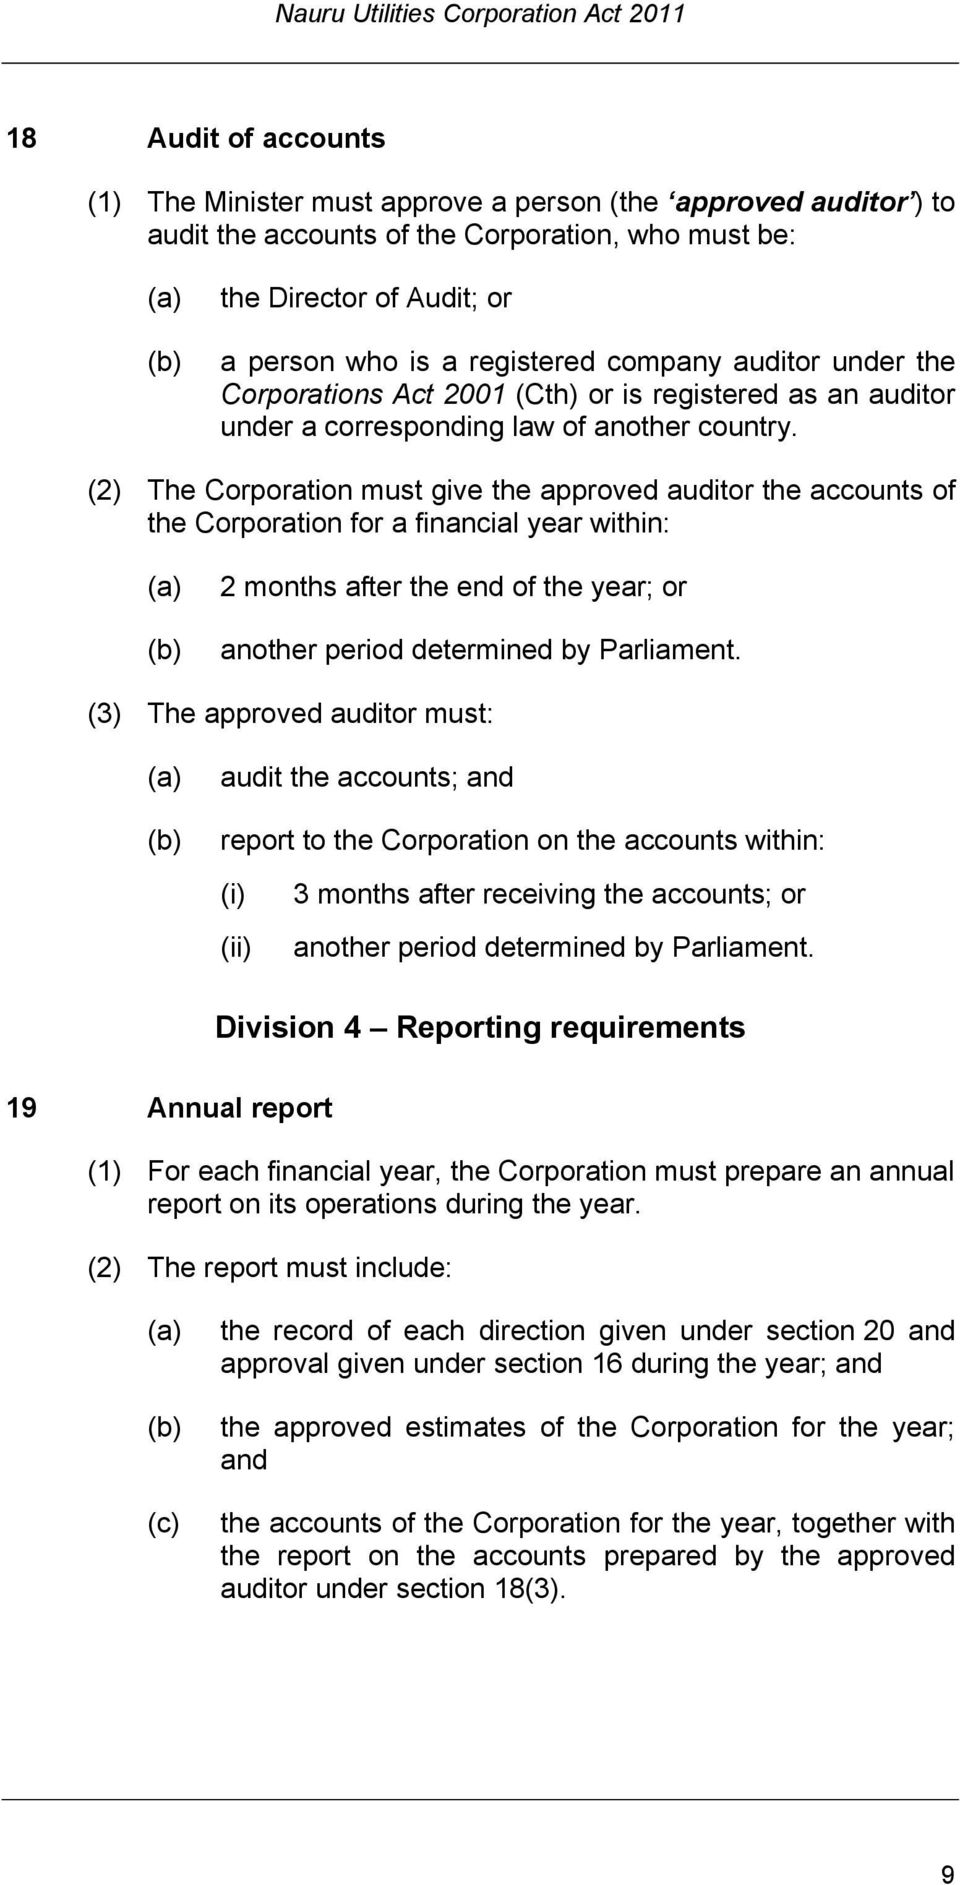 (2) The Corporation must give the approved auditor the accounts of the Corporation for a financial year within: 2 months after the end of the year; or another period determined by Parliament.